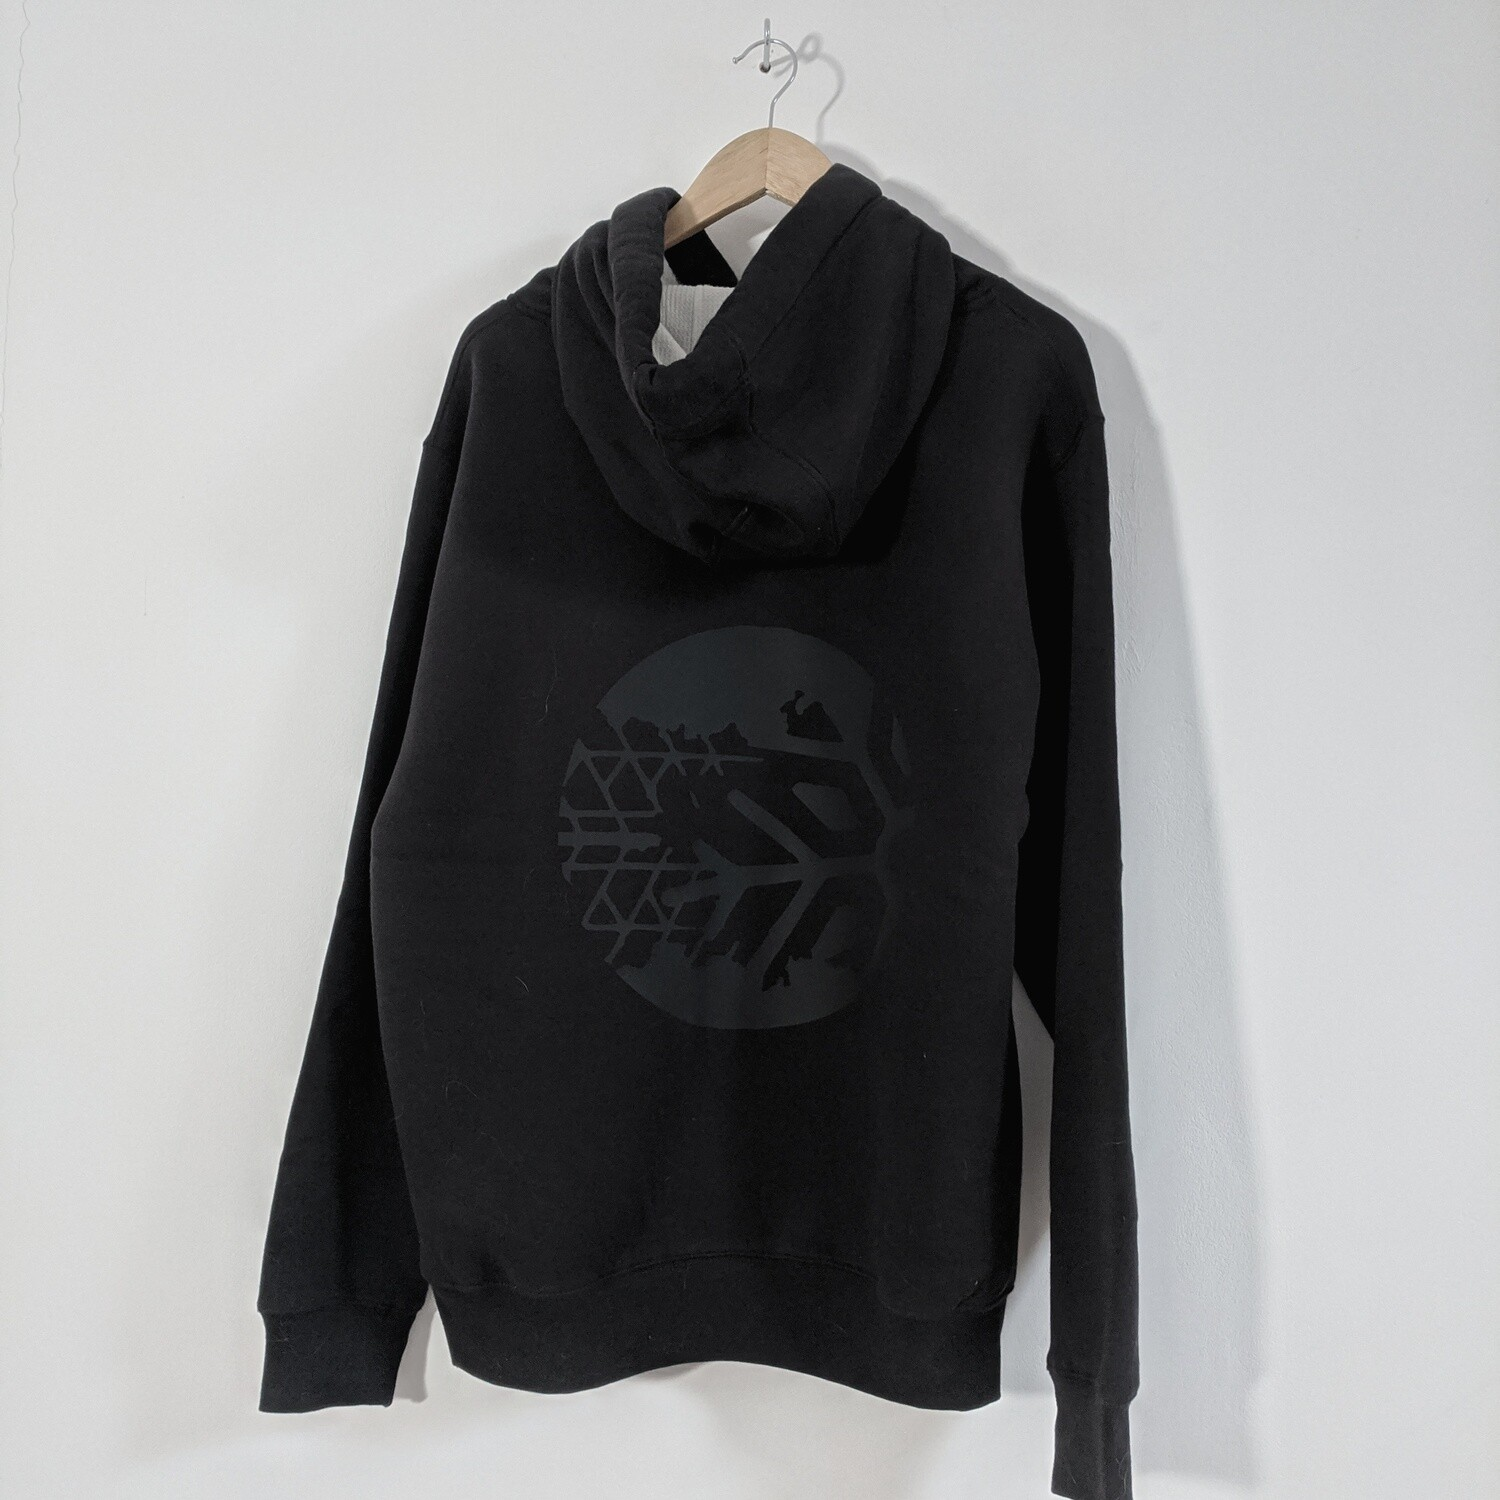 SNO.MAD 'STEALTH' HOODIE